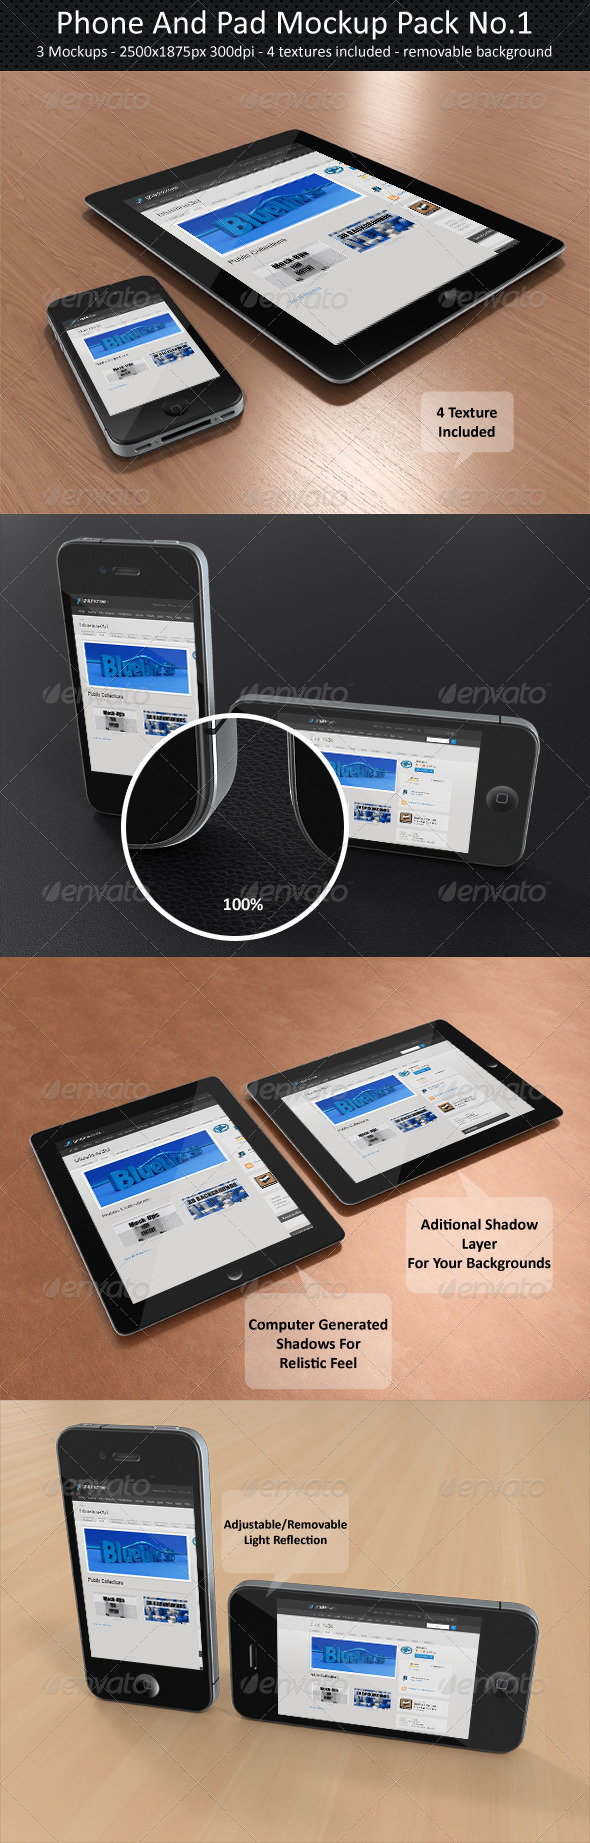 Phone And Pad Mock-Up Pack No.1 - Multiple Displays